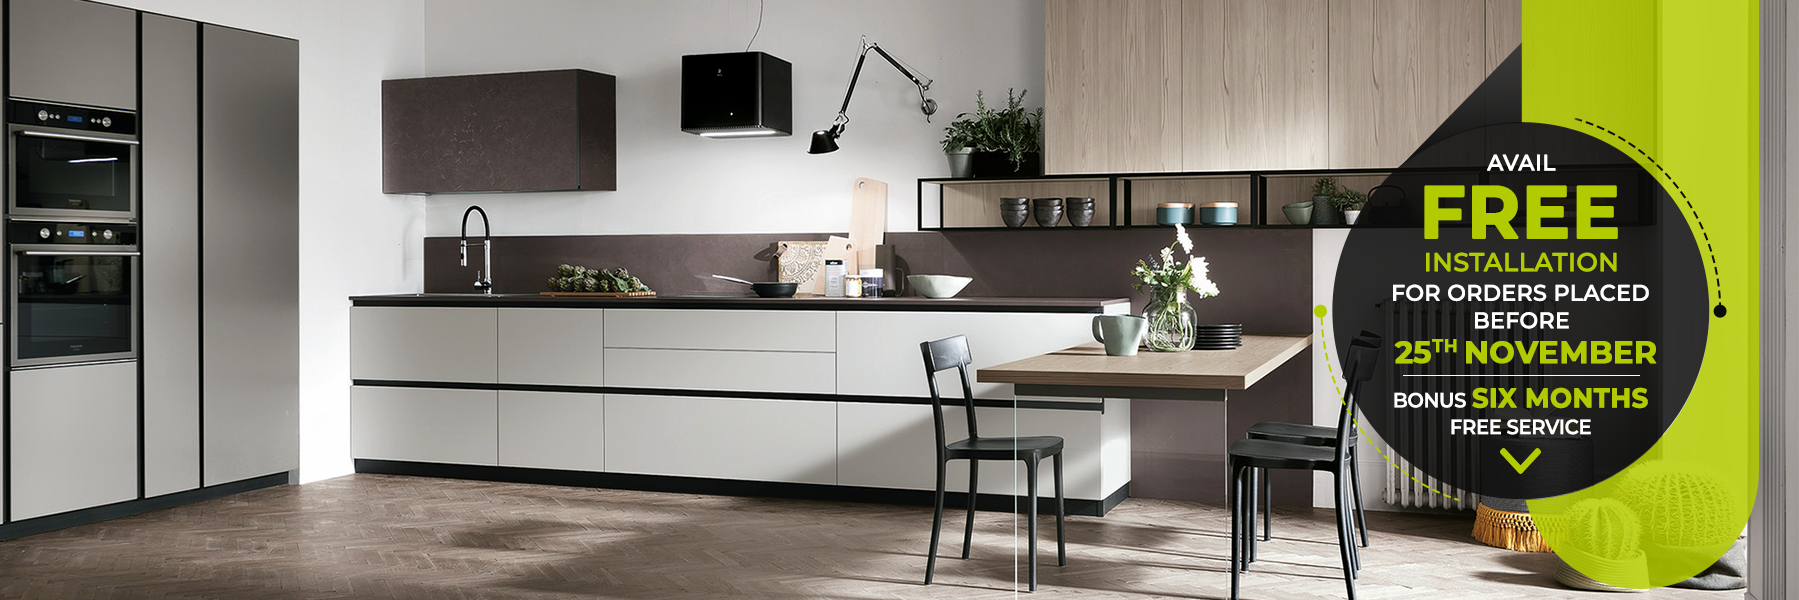 Kitchens For Sale Offer - Eurolife Sydney